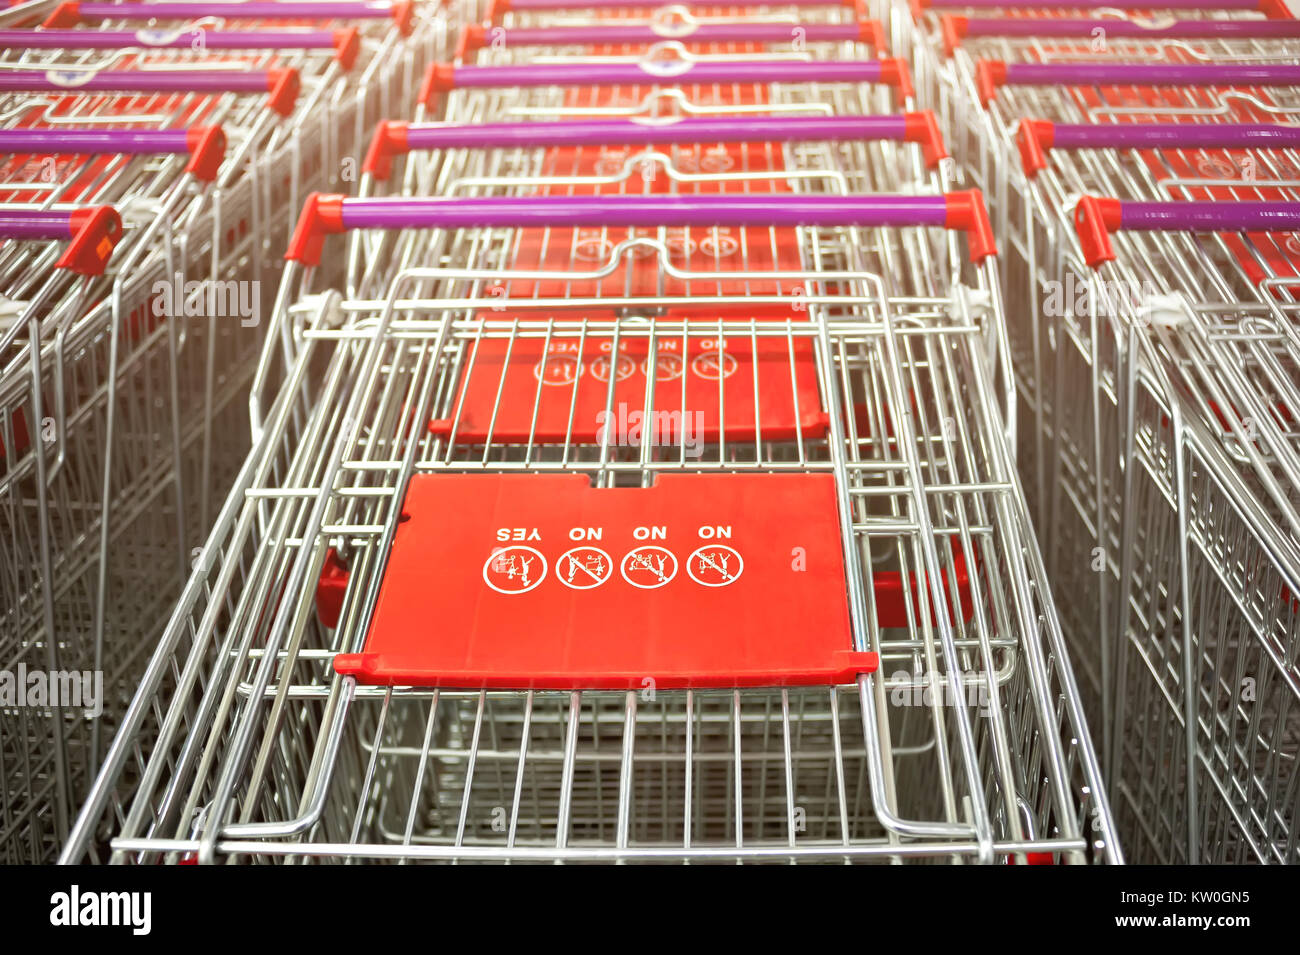 Row of supermarket shopping cart trolleys vintage look - Stock Image